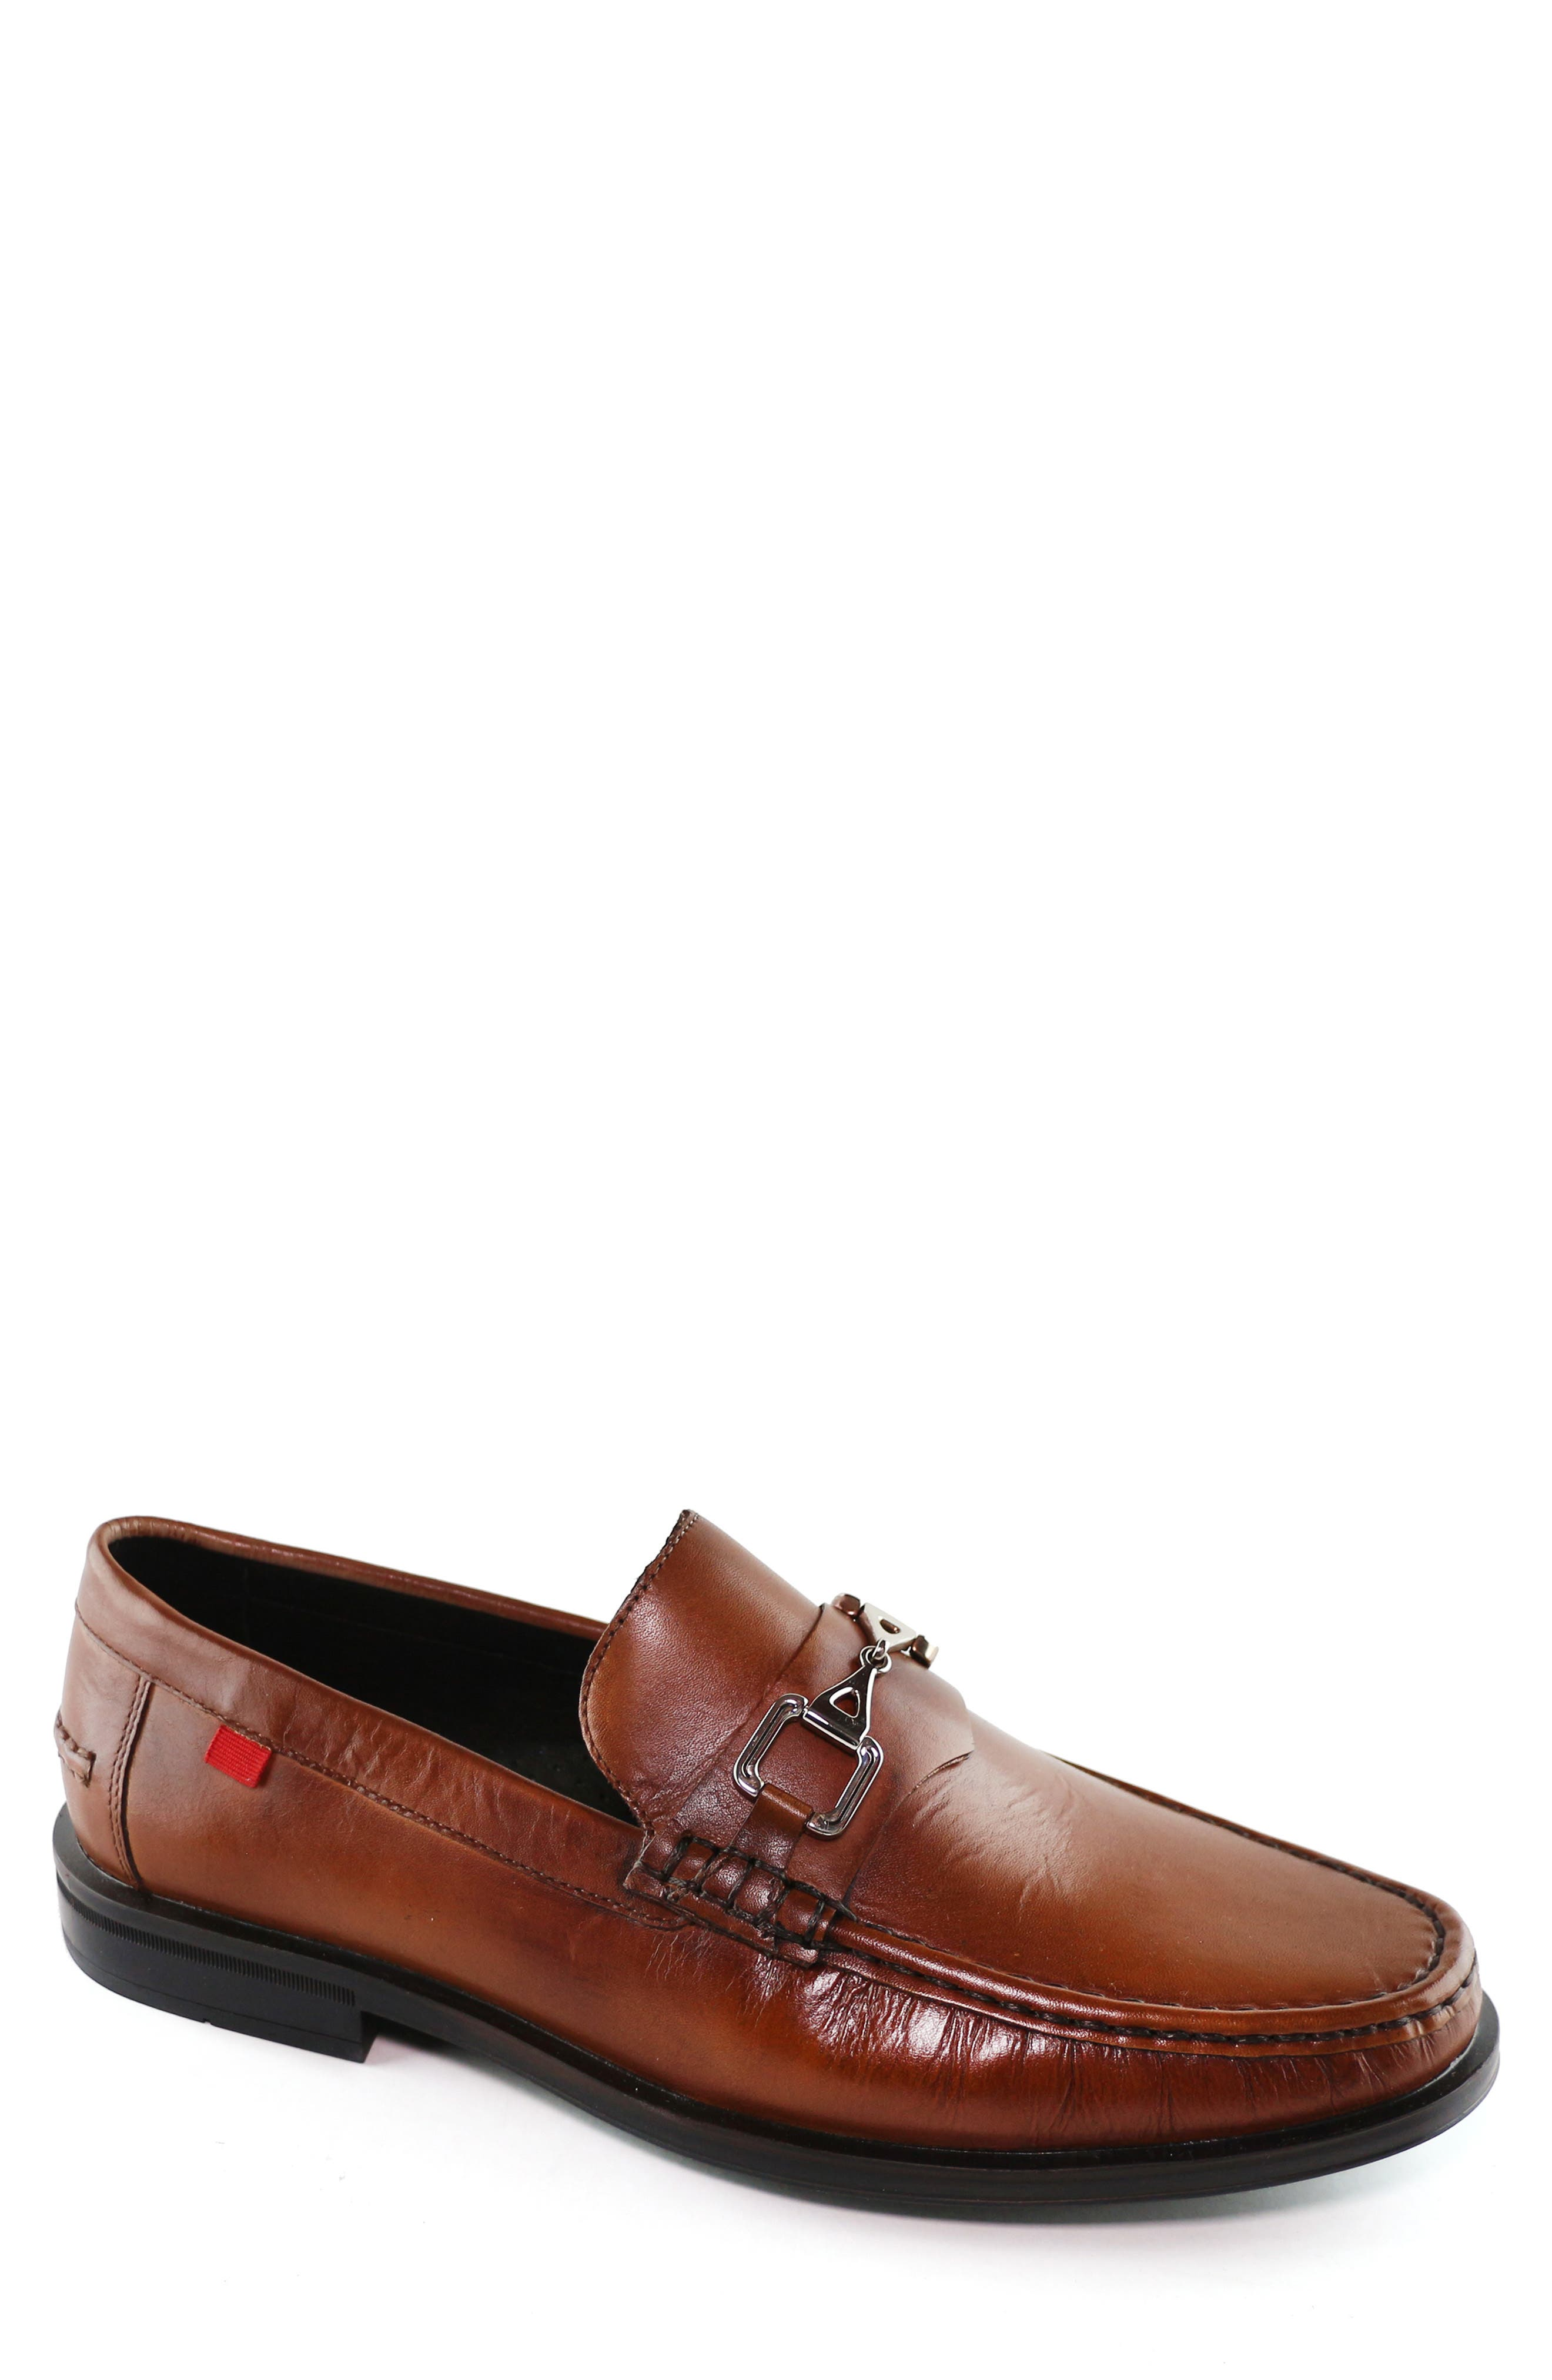 Marc Joseph New York Astoria Bit Loafer